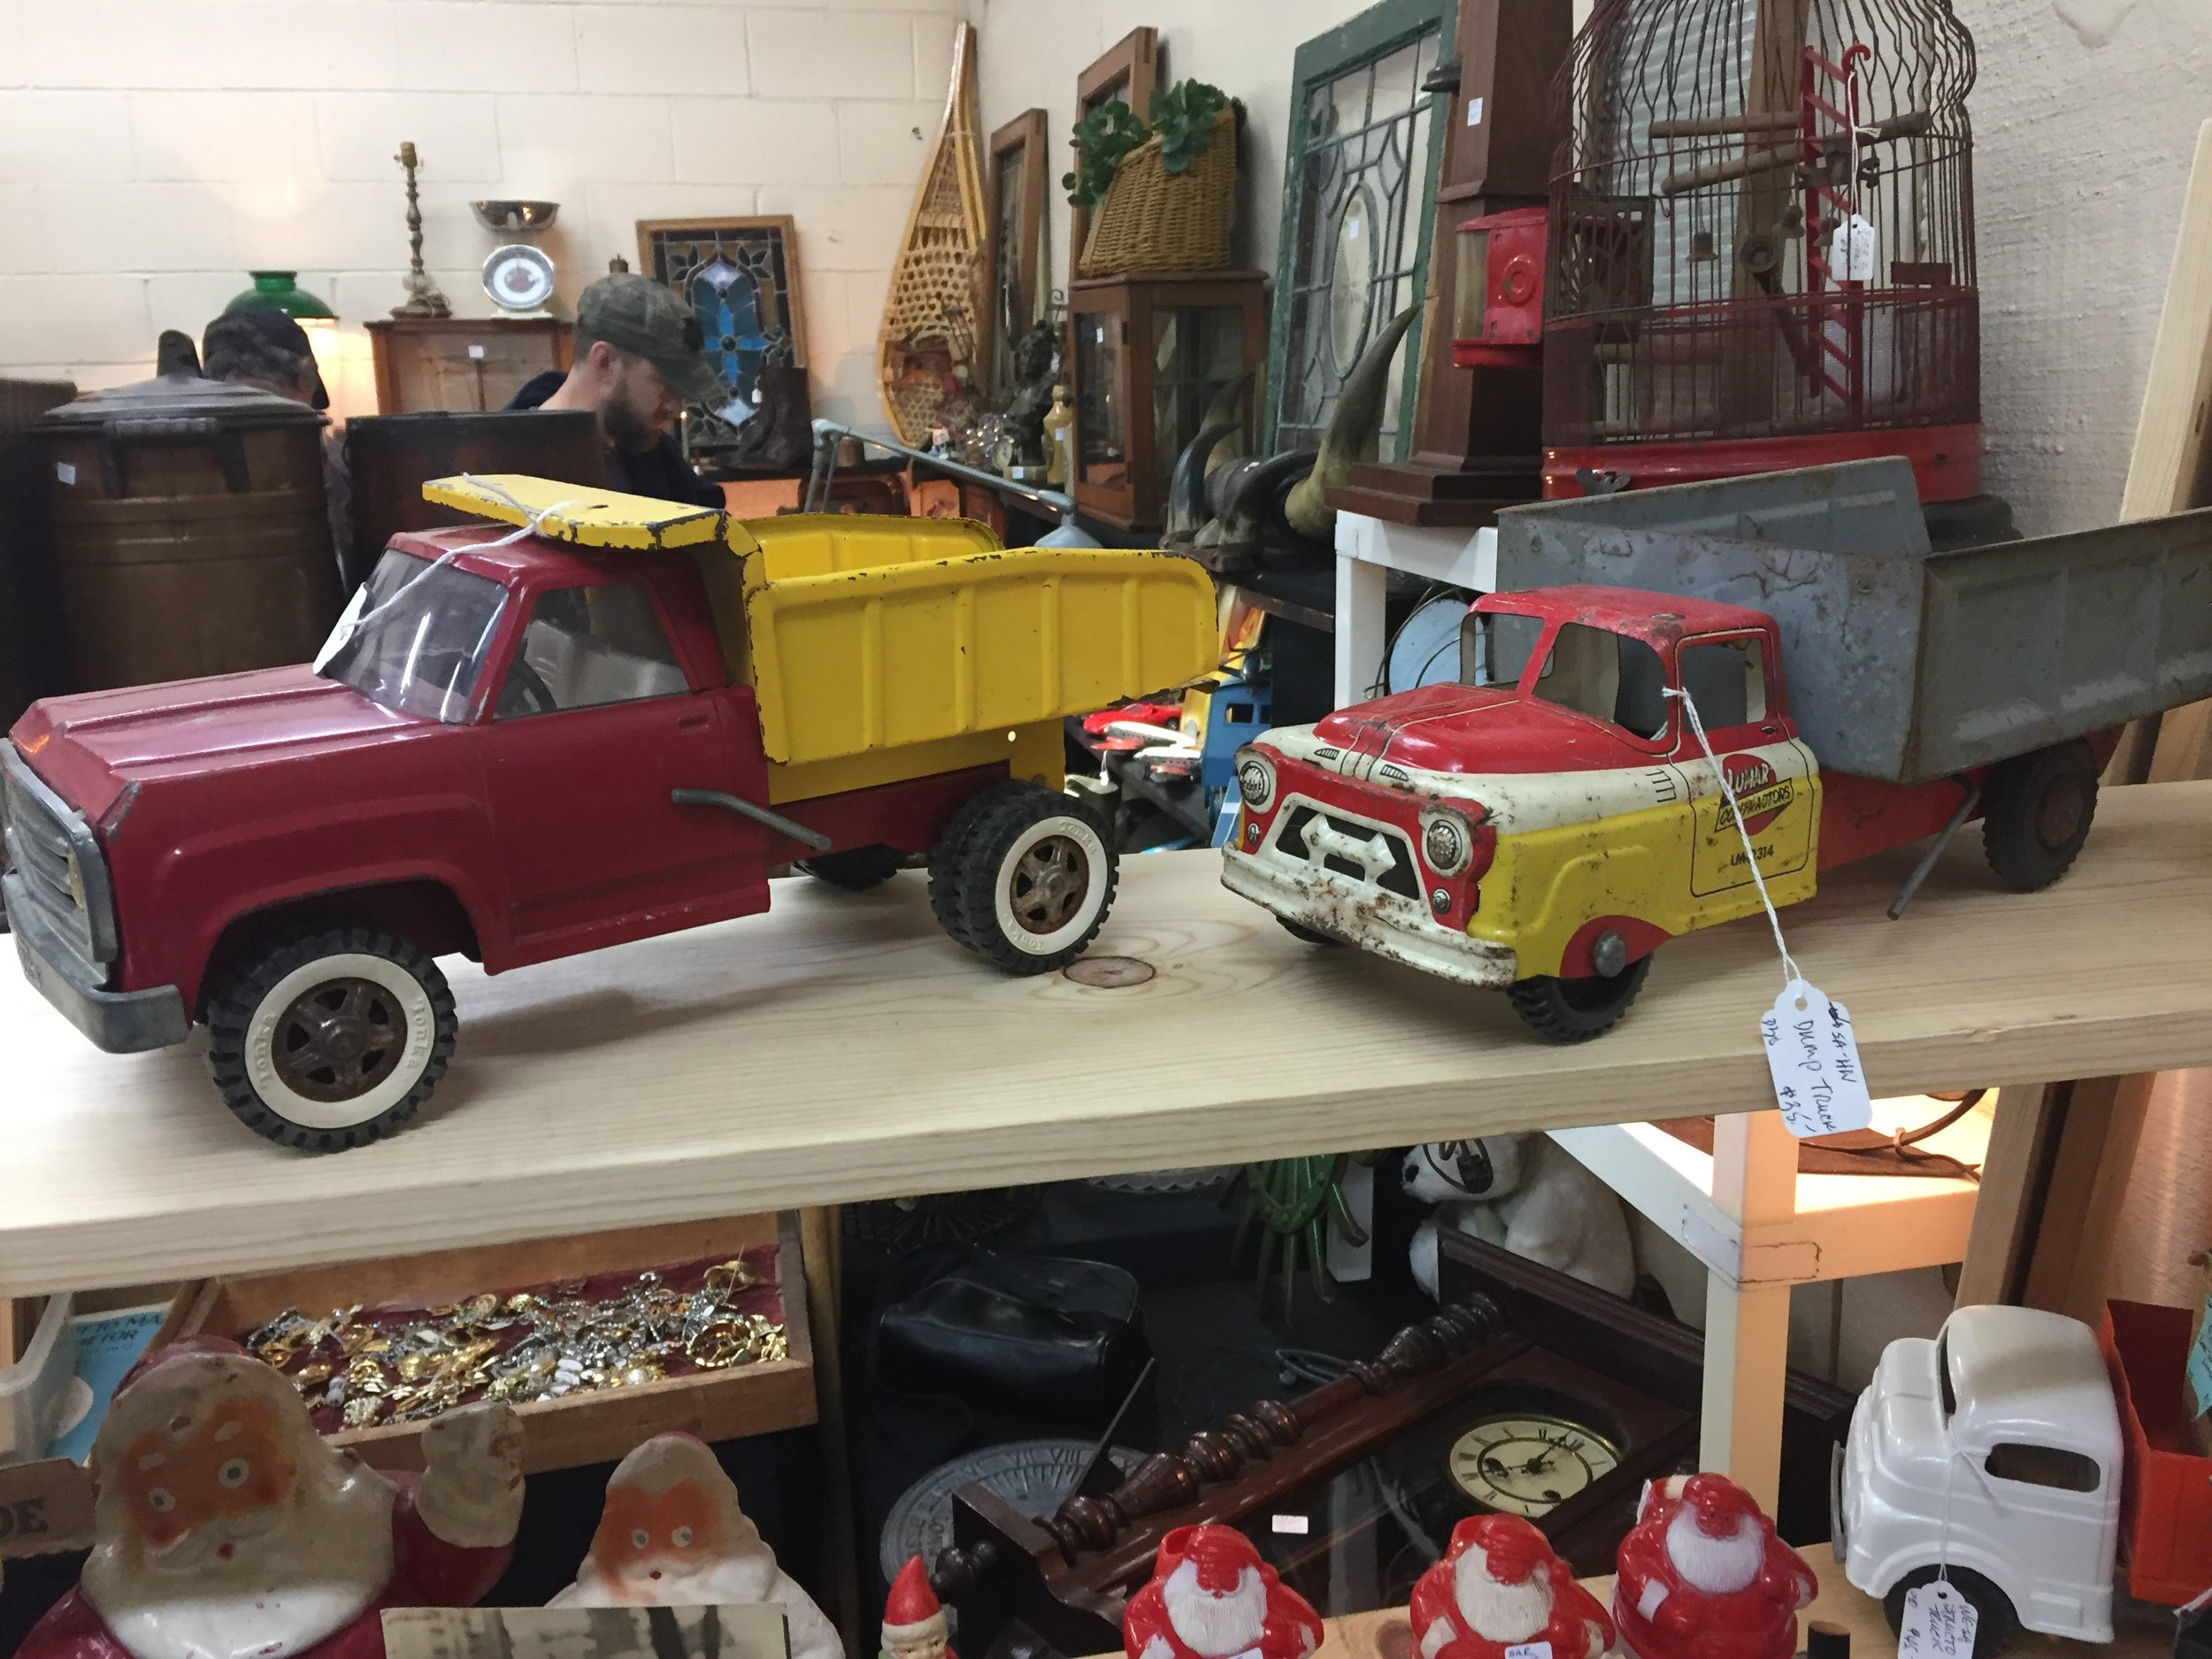 These old toy trucks were at the same booth as the teddy bears.  i wish i knew more about these.